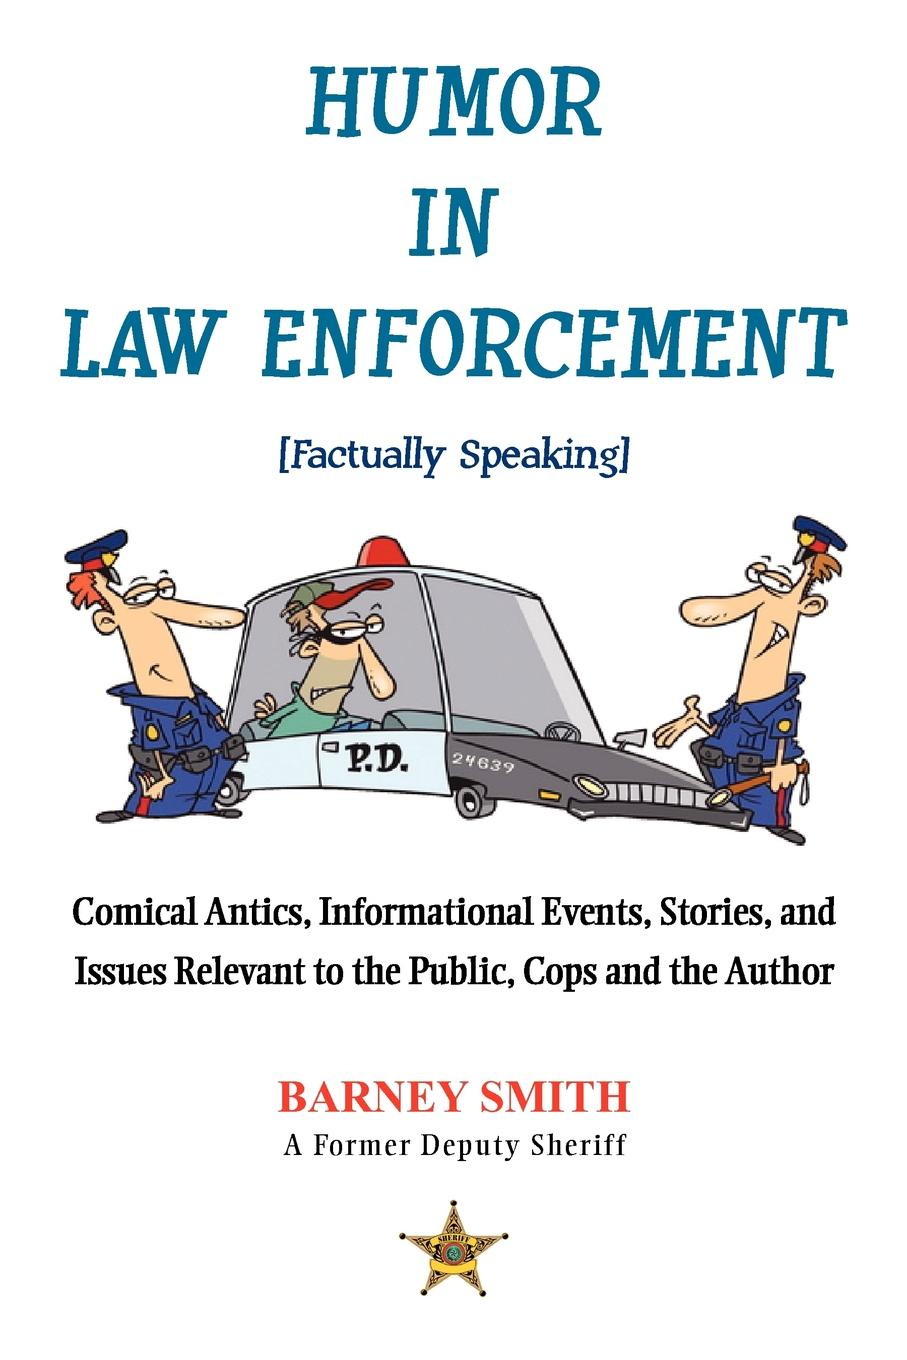 Humor in Law Enforcement .Factually Speaking.. Comical Antics, Informational Events, Stories, and Issues Relevant to the Public, Cops and the Author